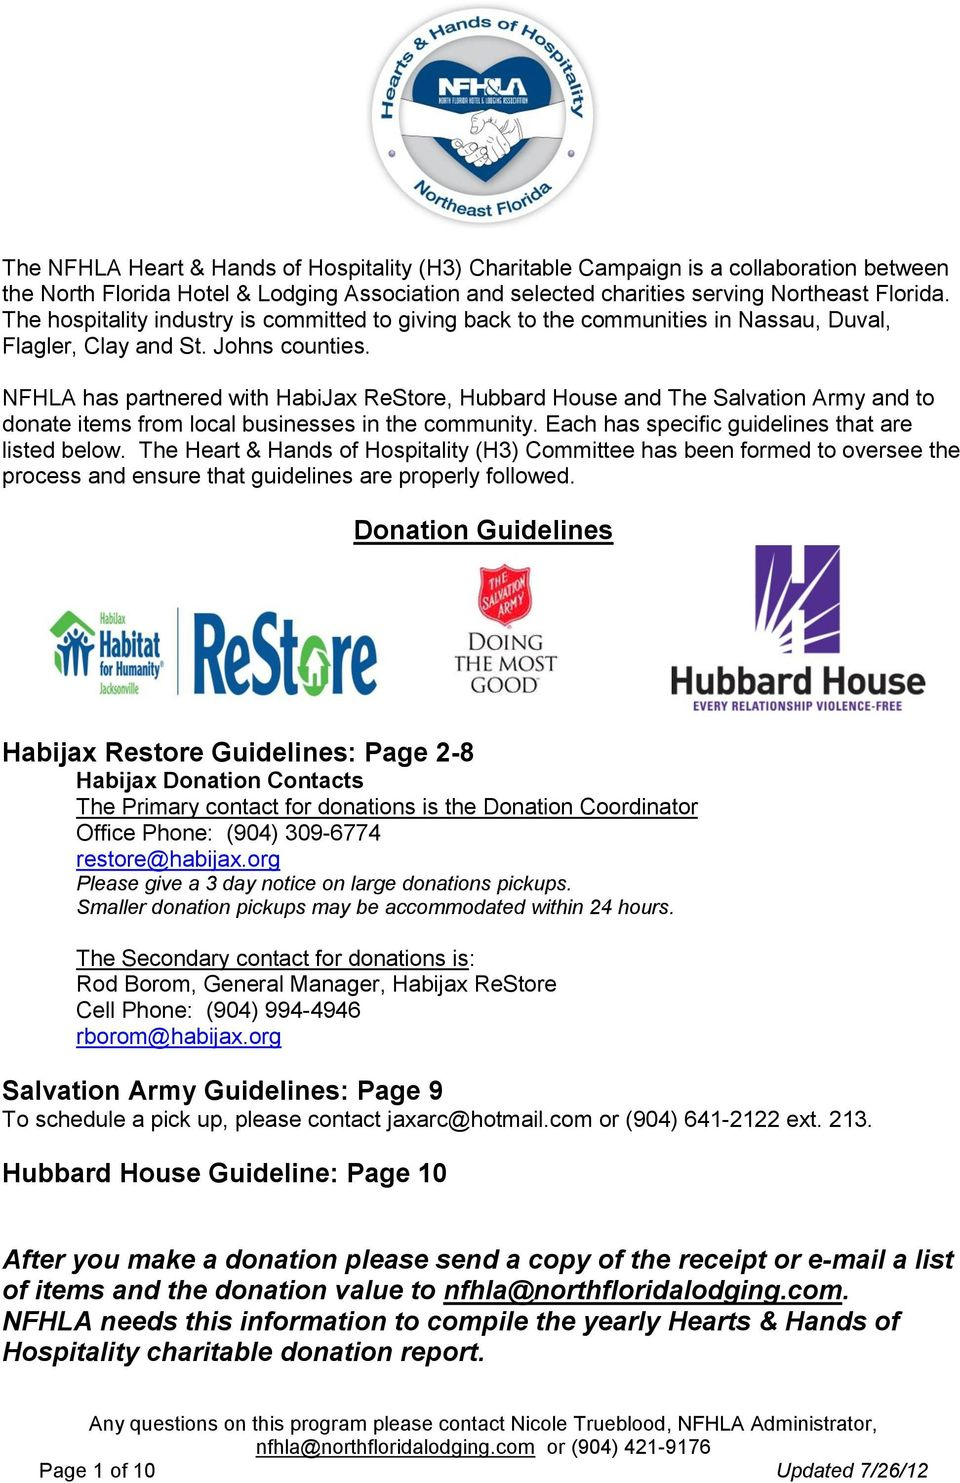 NFHLA has partnered with HabiJax ReStore, Hubbard House and The Salvation Army and to donate items from local businesses in the community. Each has specific guidelines that are listed below.